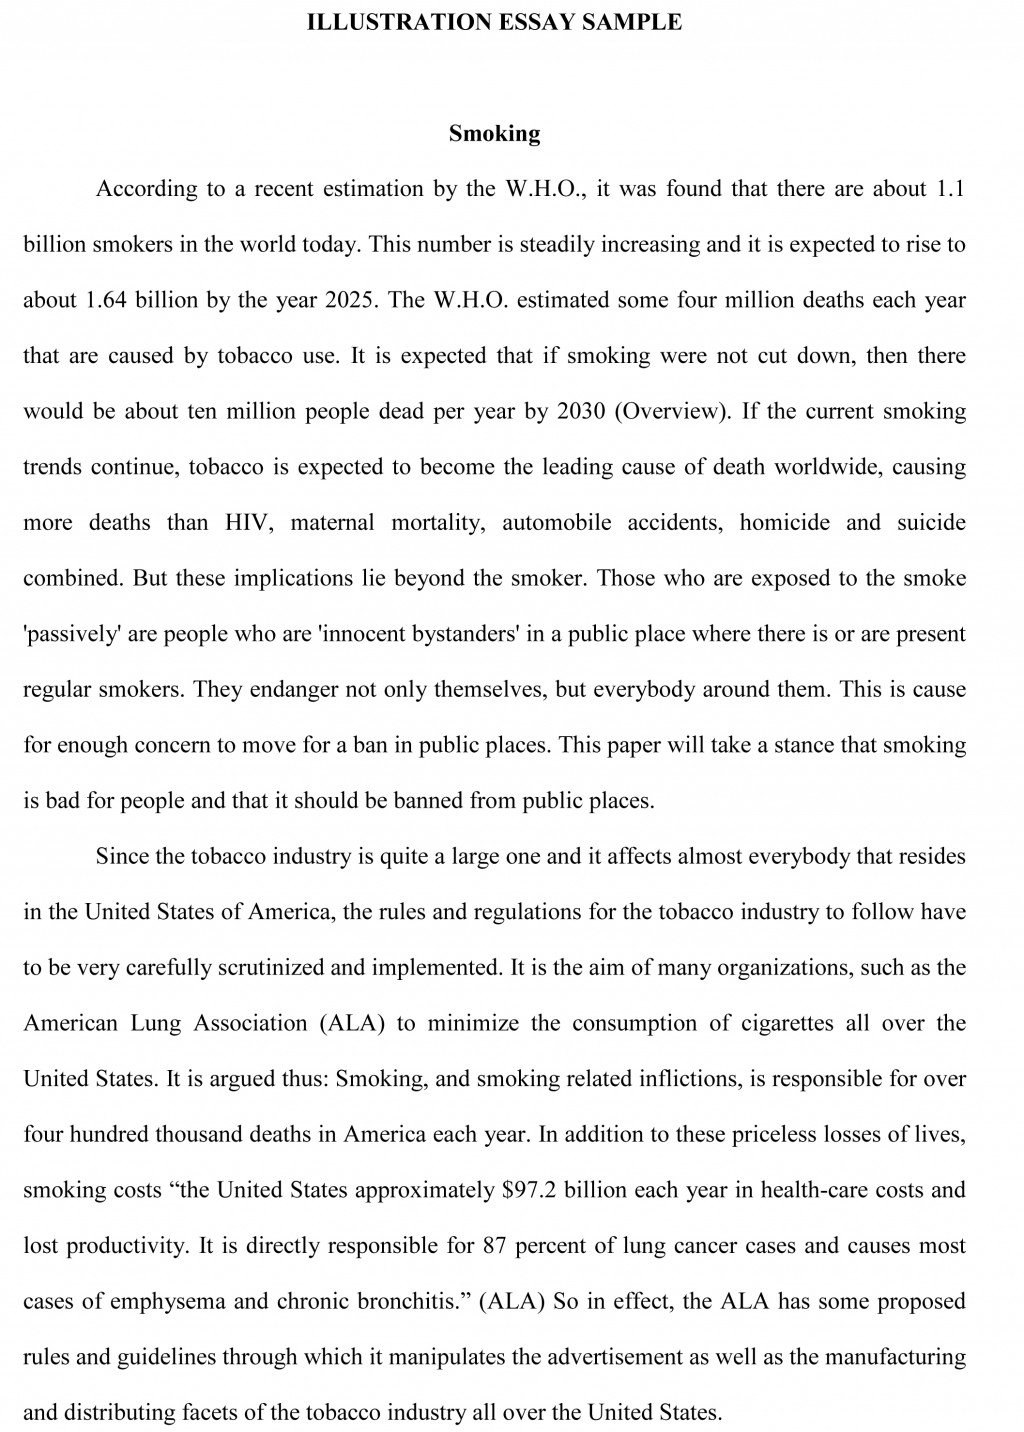 011 Essay Example Informative Introduction Examples Illustration Sample Frightening Paragraph Large